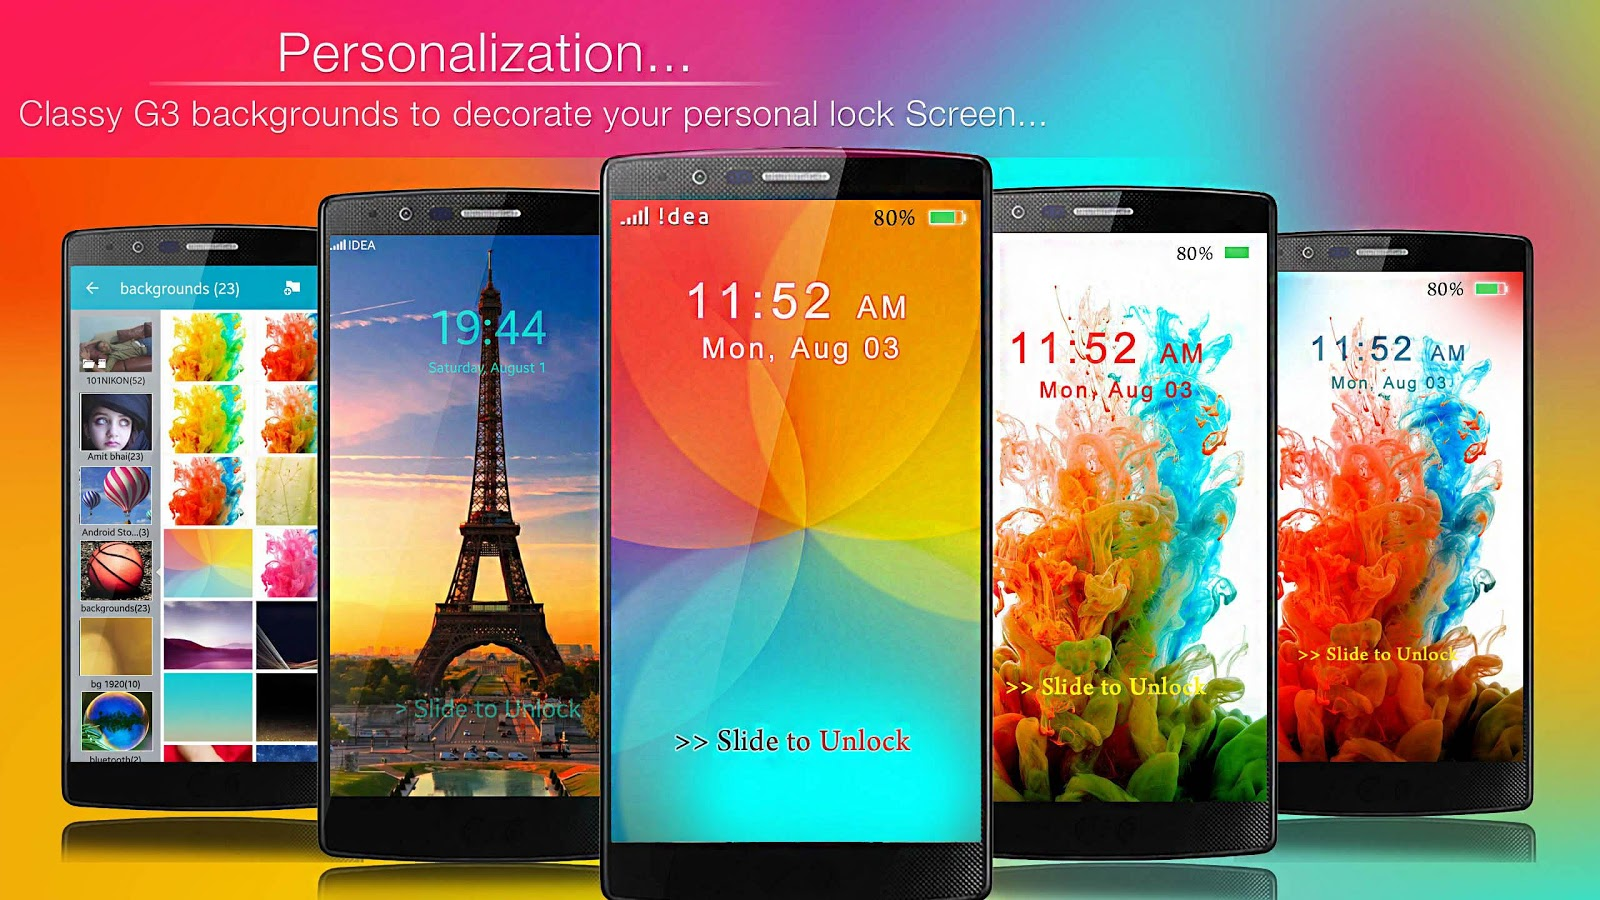 Keypad Locker : LG G3 Theme 1 0 APK Download - Android Entertainment